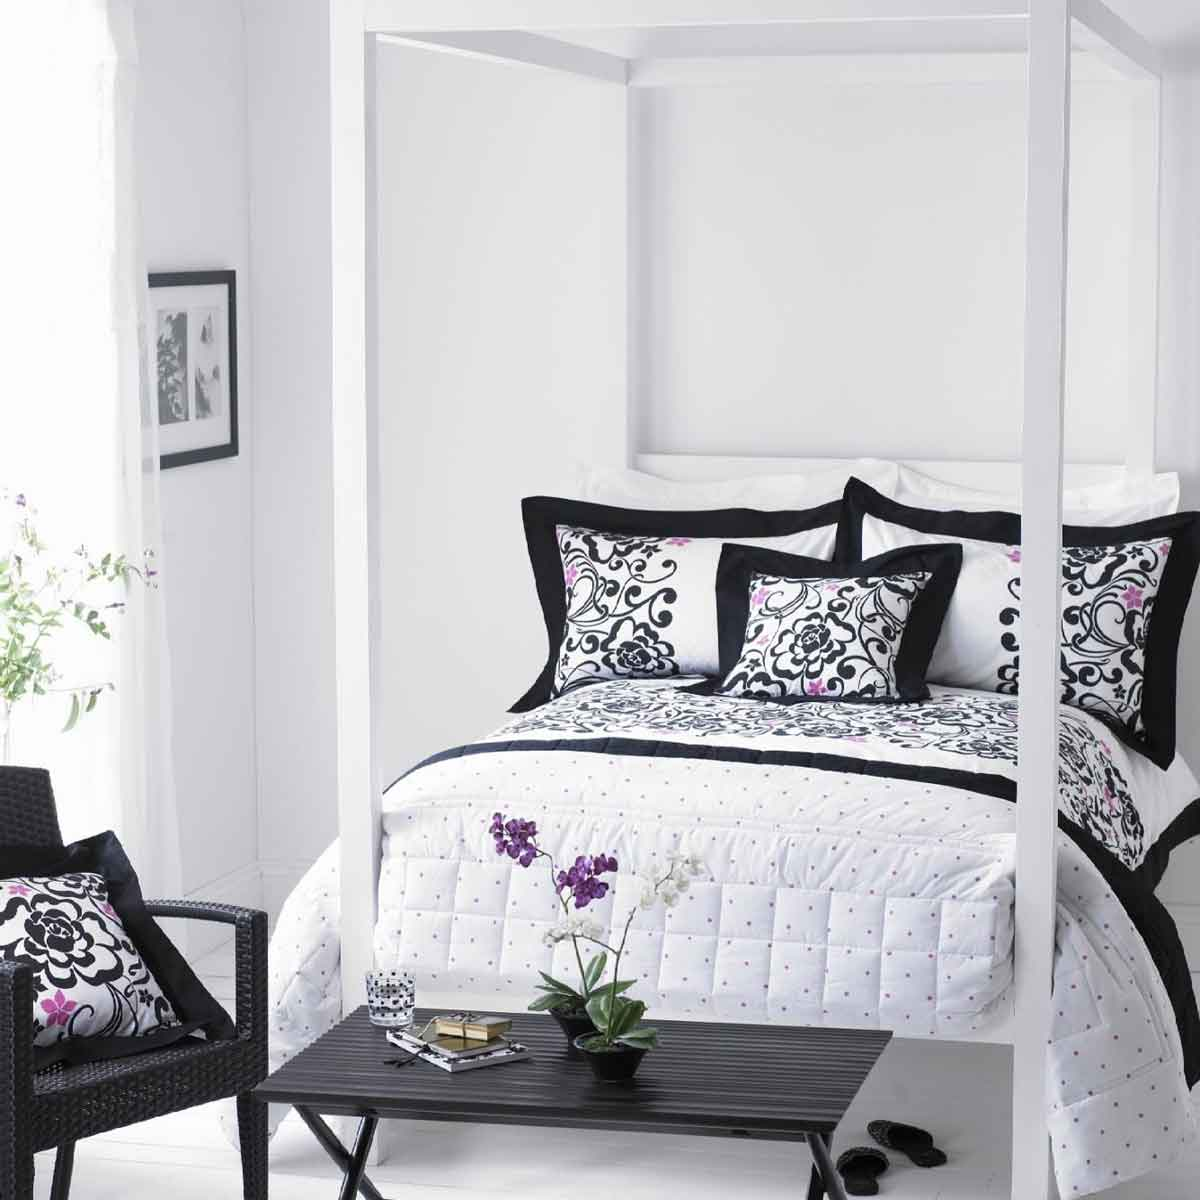 Black white grey bedroom 2017 grasscloth wallpaper for Black and silver bedroom designs